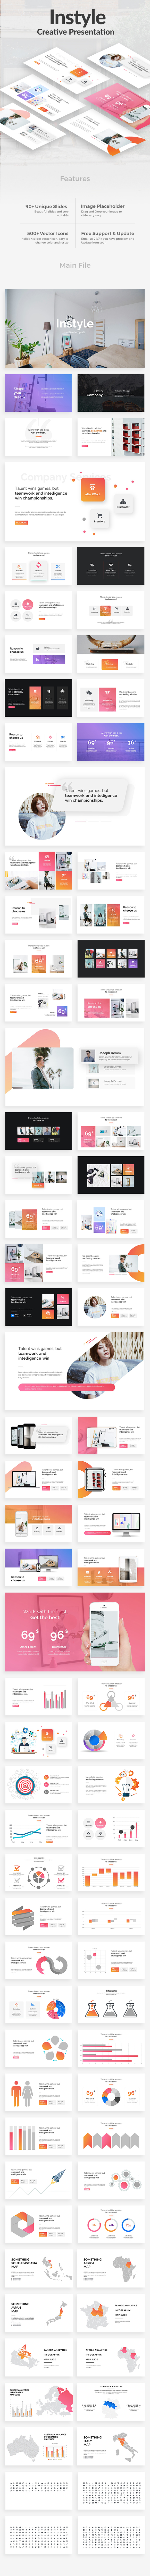 GraphicRiver Instyle Creative Powerpoint Template 21022920